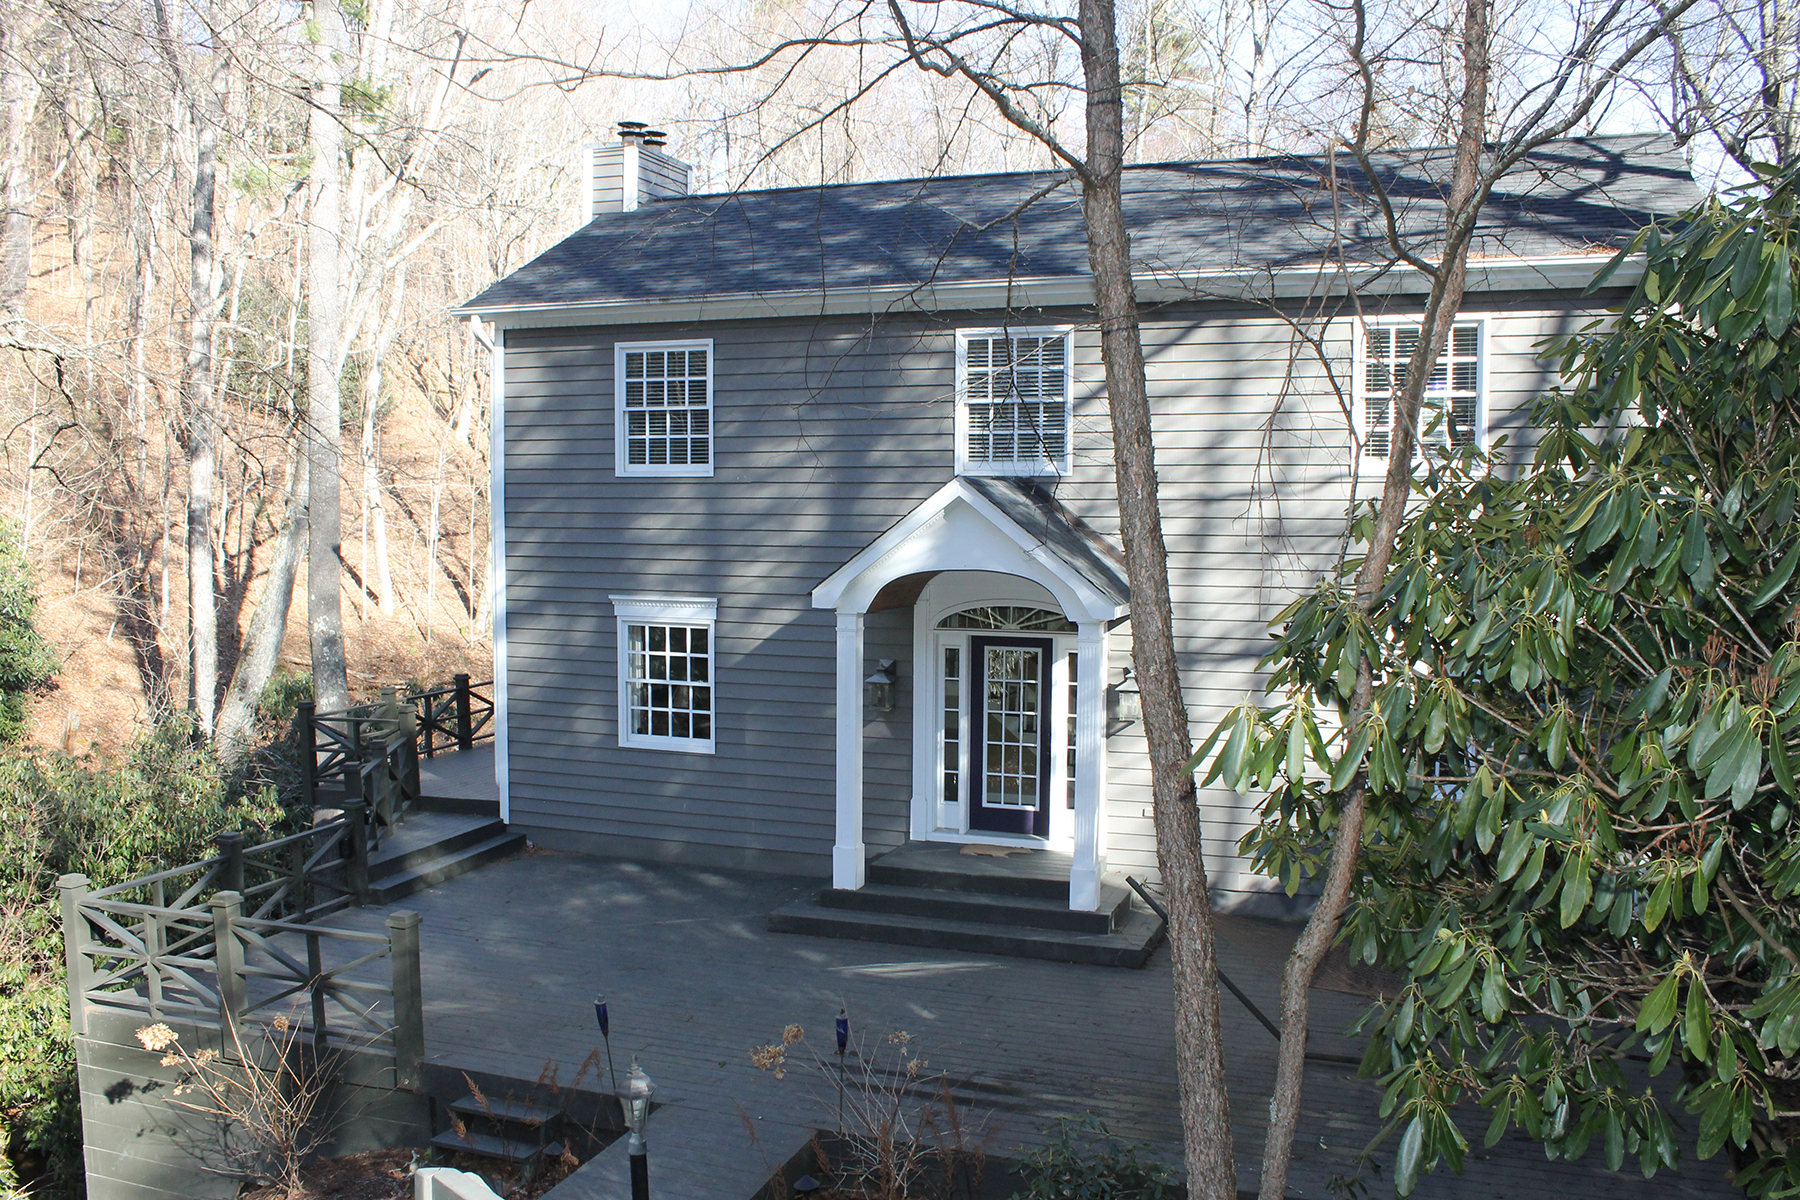 Single Family Home for Sale at MAYVIEW - BLOWING ROCK 944 Laurel Lane, Blowing Rock, North Carolina 28605 United States